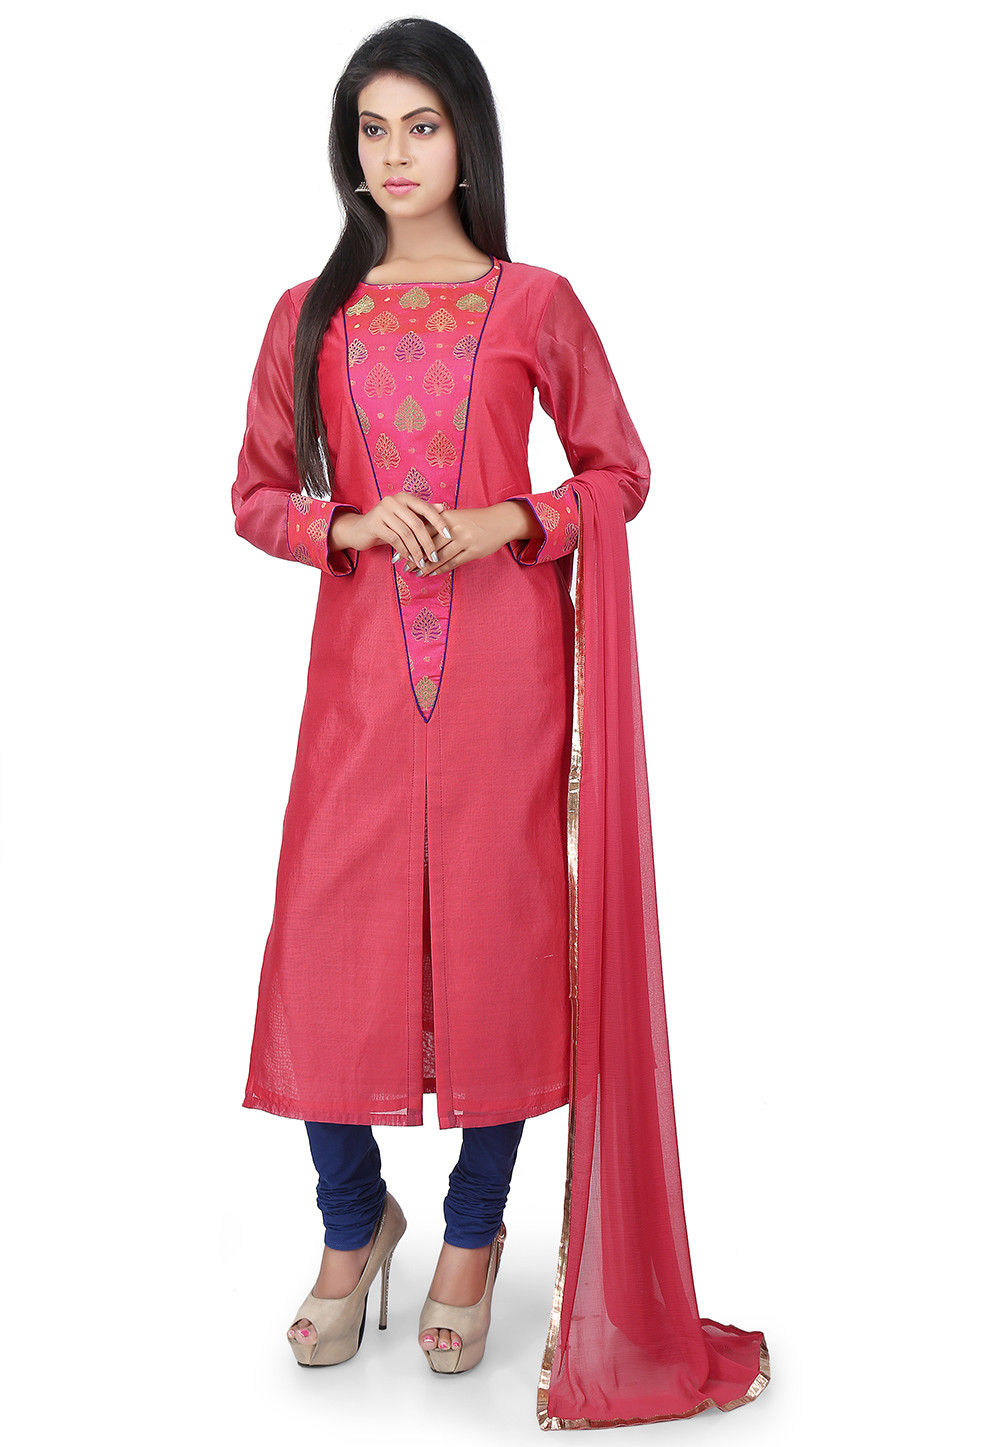 Plain Art Chanderi Cotton Straight Cut Suit in Coral